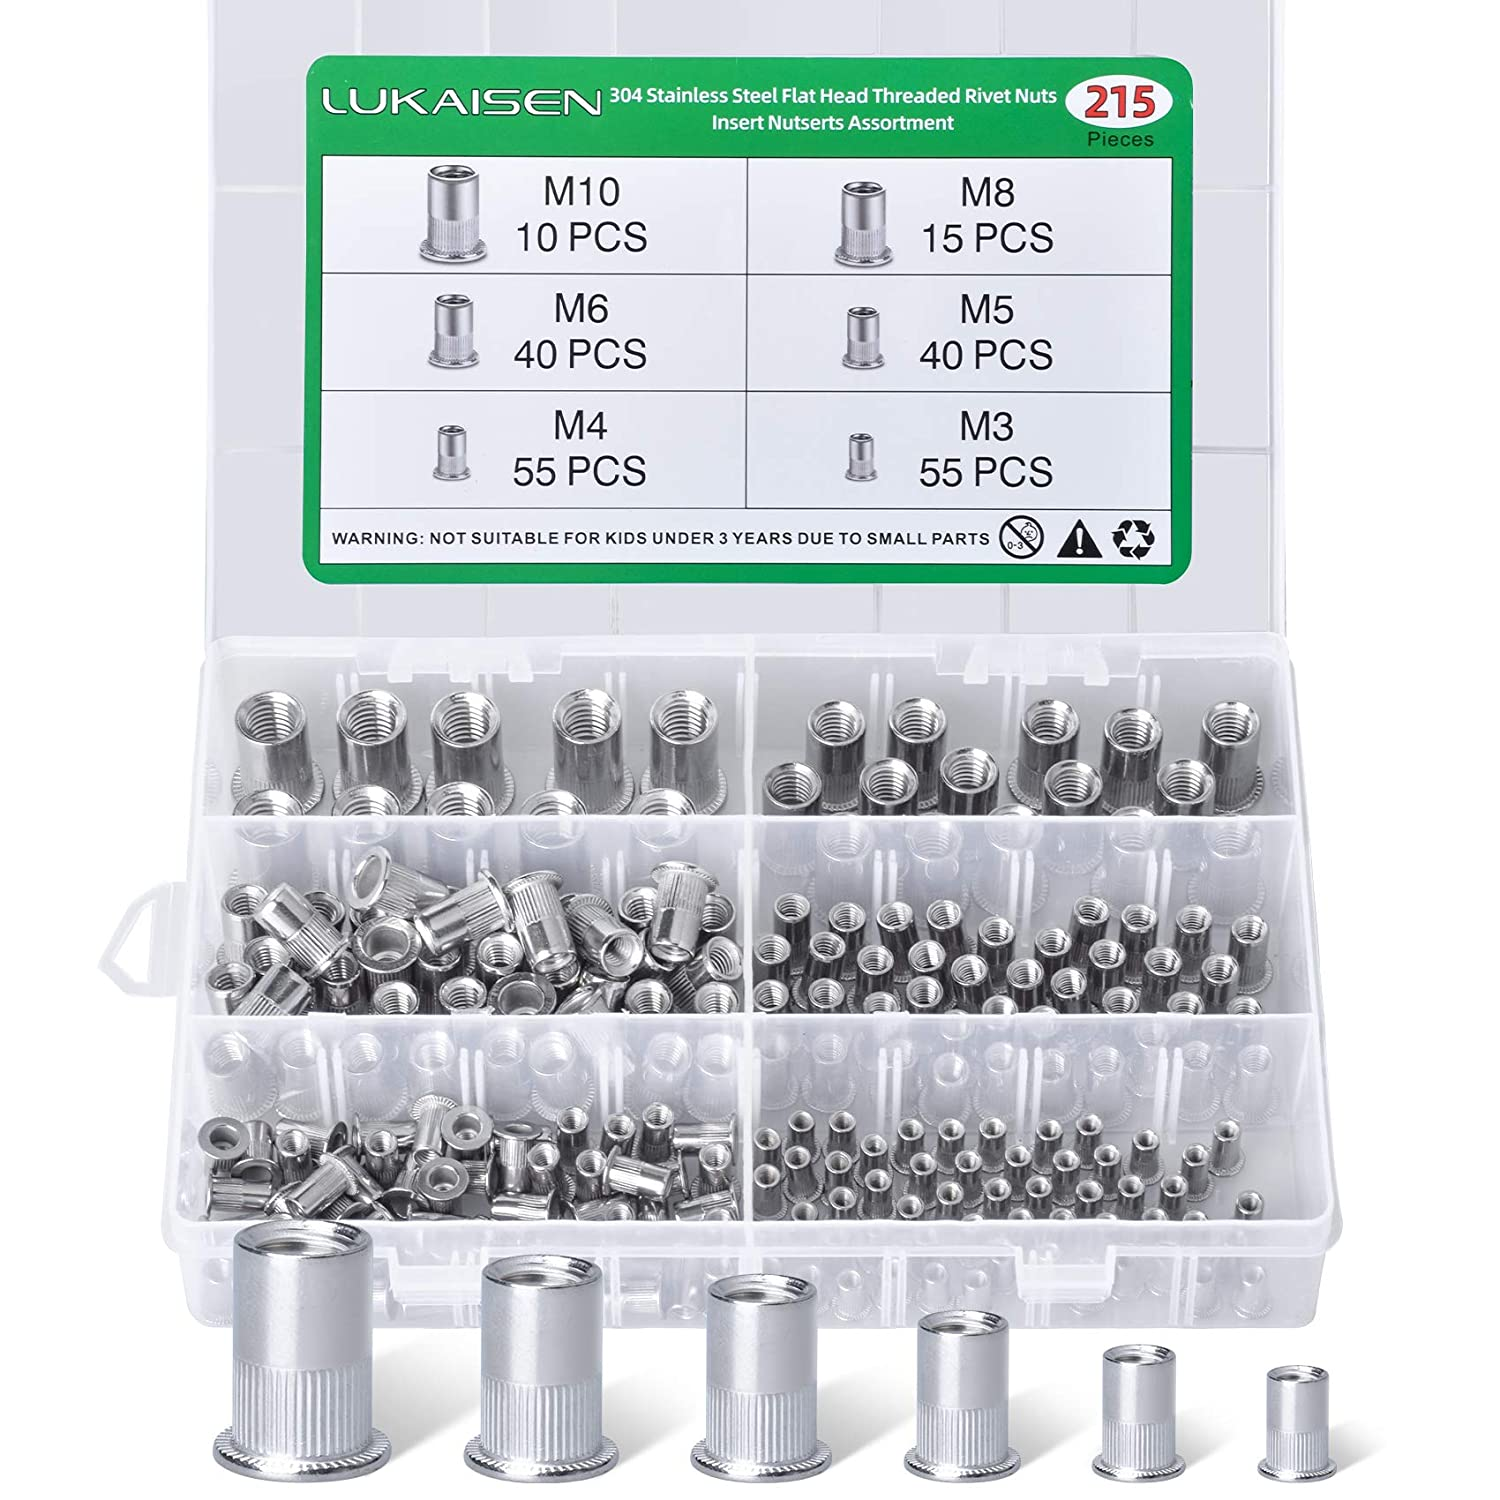 Rivet Nuts, 215PCS 304 Stainless Steel M3 M4 M5 M6 M8 M10 Rivnut Assortment Kit, Flat Head Threaded Insert Nutserts Assort for Automotive Furniture Decoration Electrical and Industrial Products